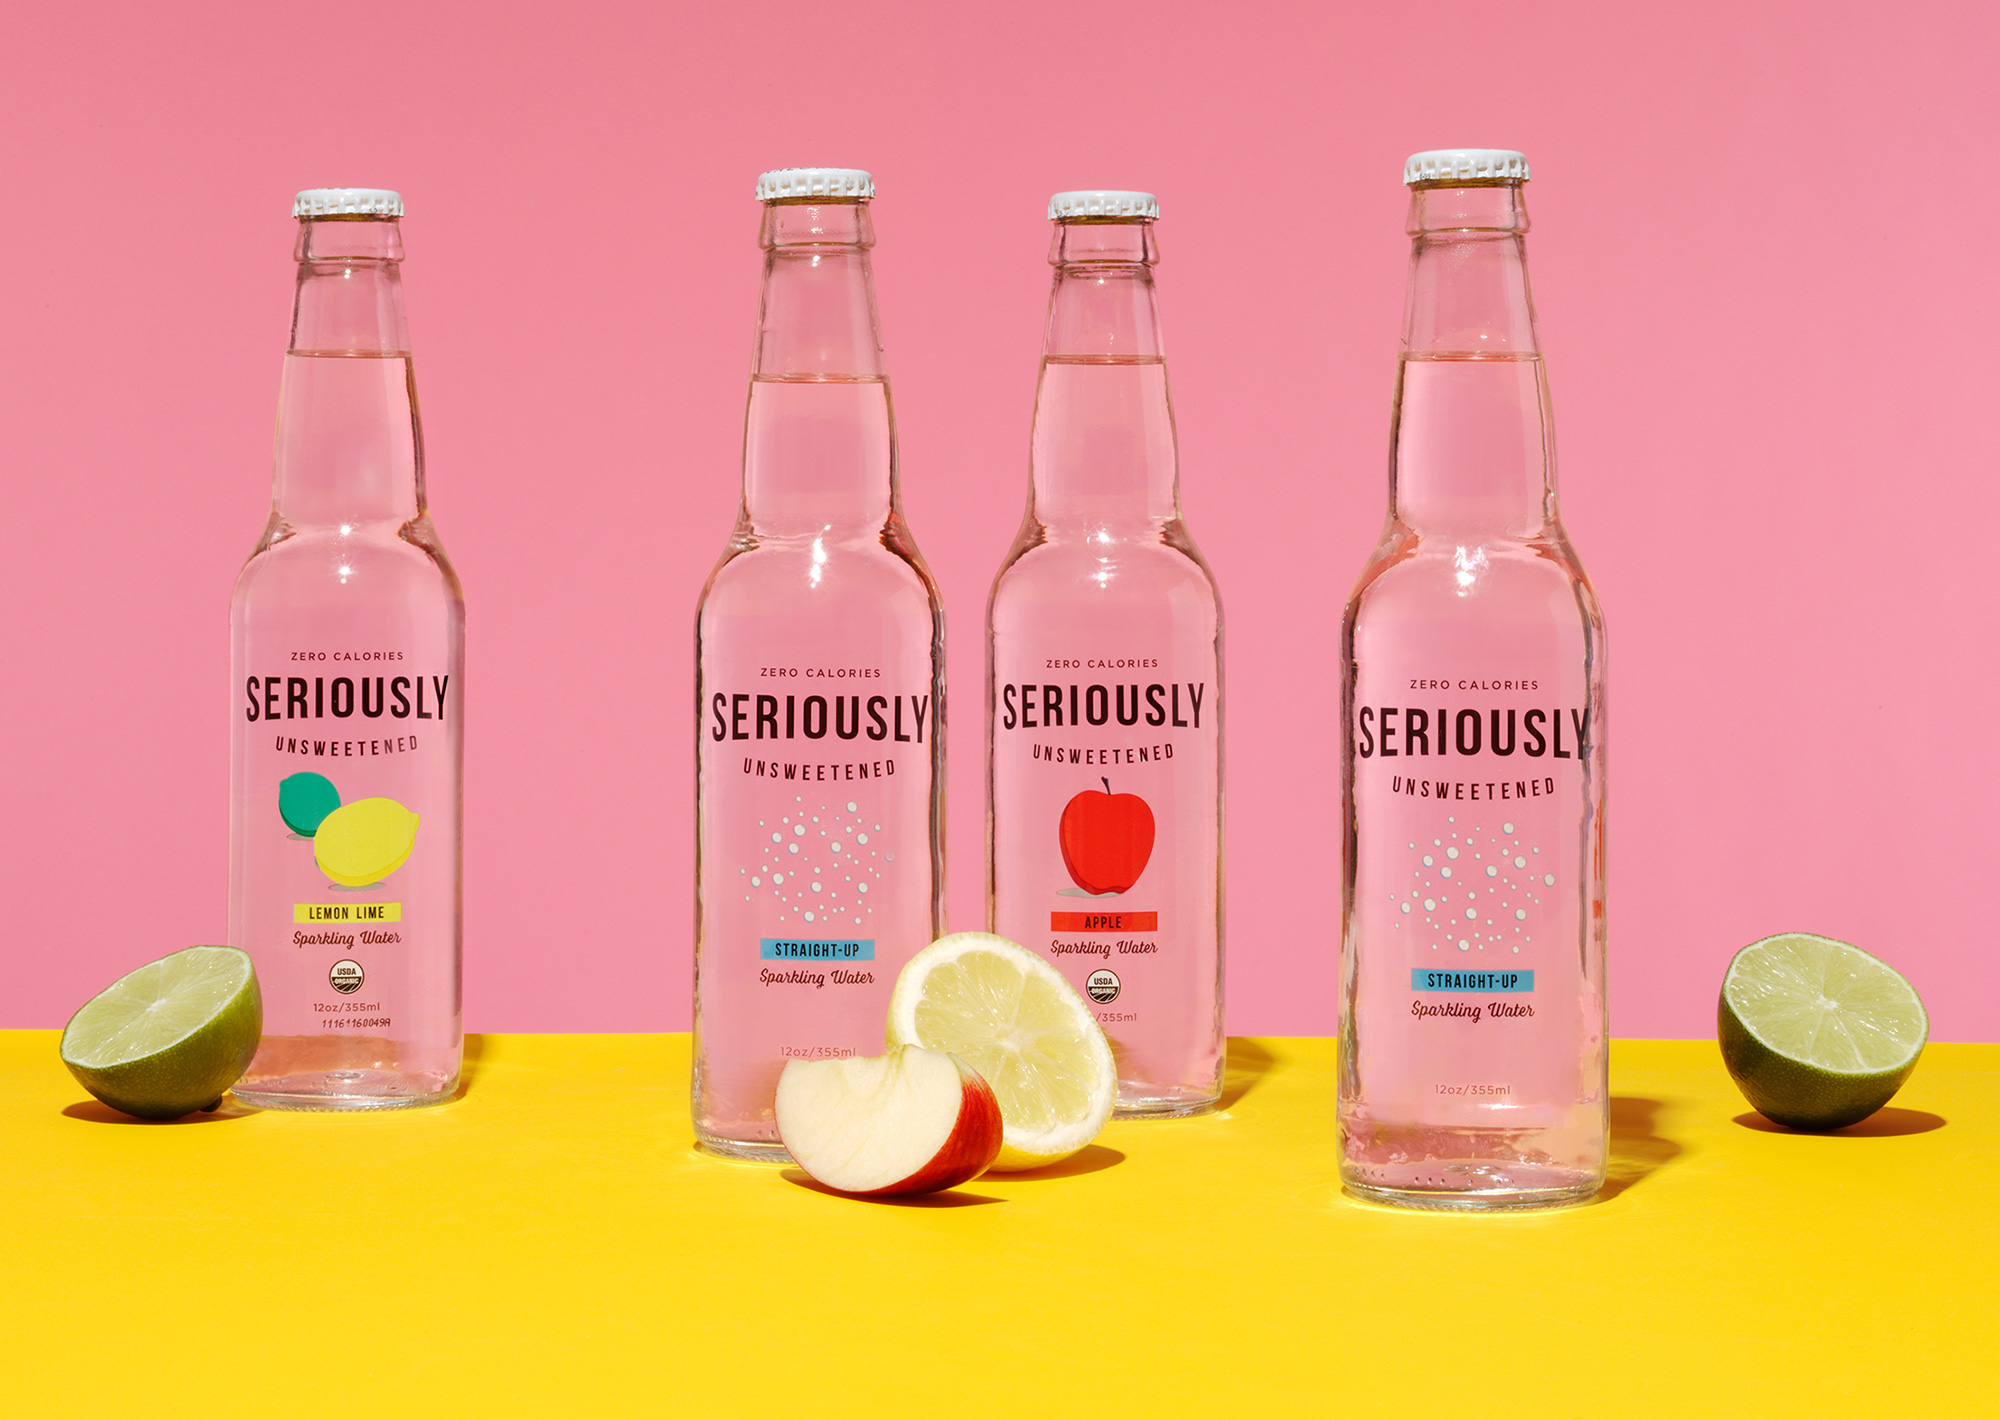 bottles of Seriously Unsweetened seltzer